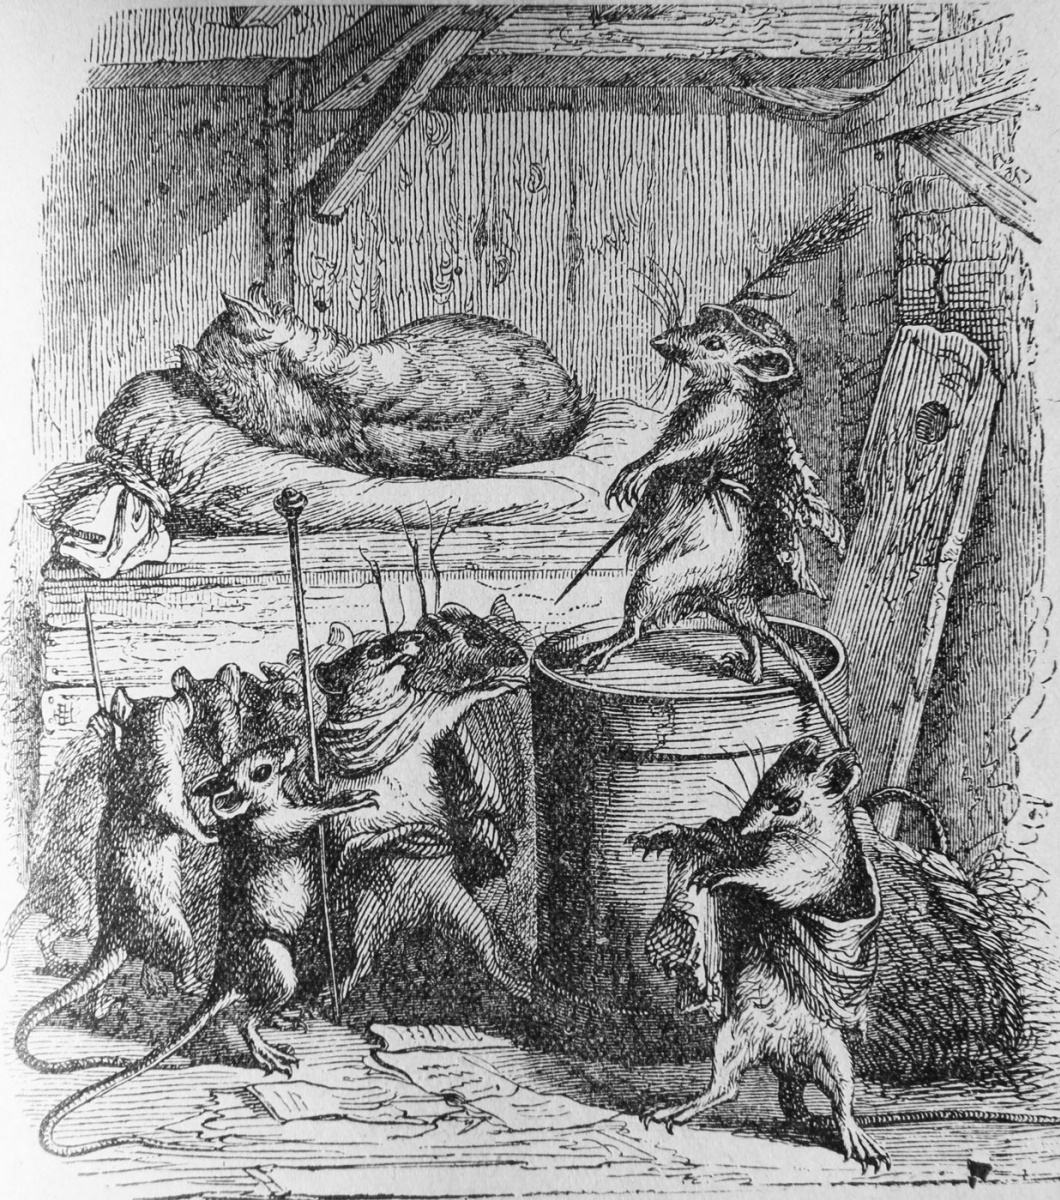 Jean Inias Isidore (Gerard) Granville. Cat and Rats. Illustrations to the fables of Florian